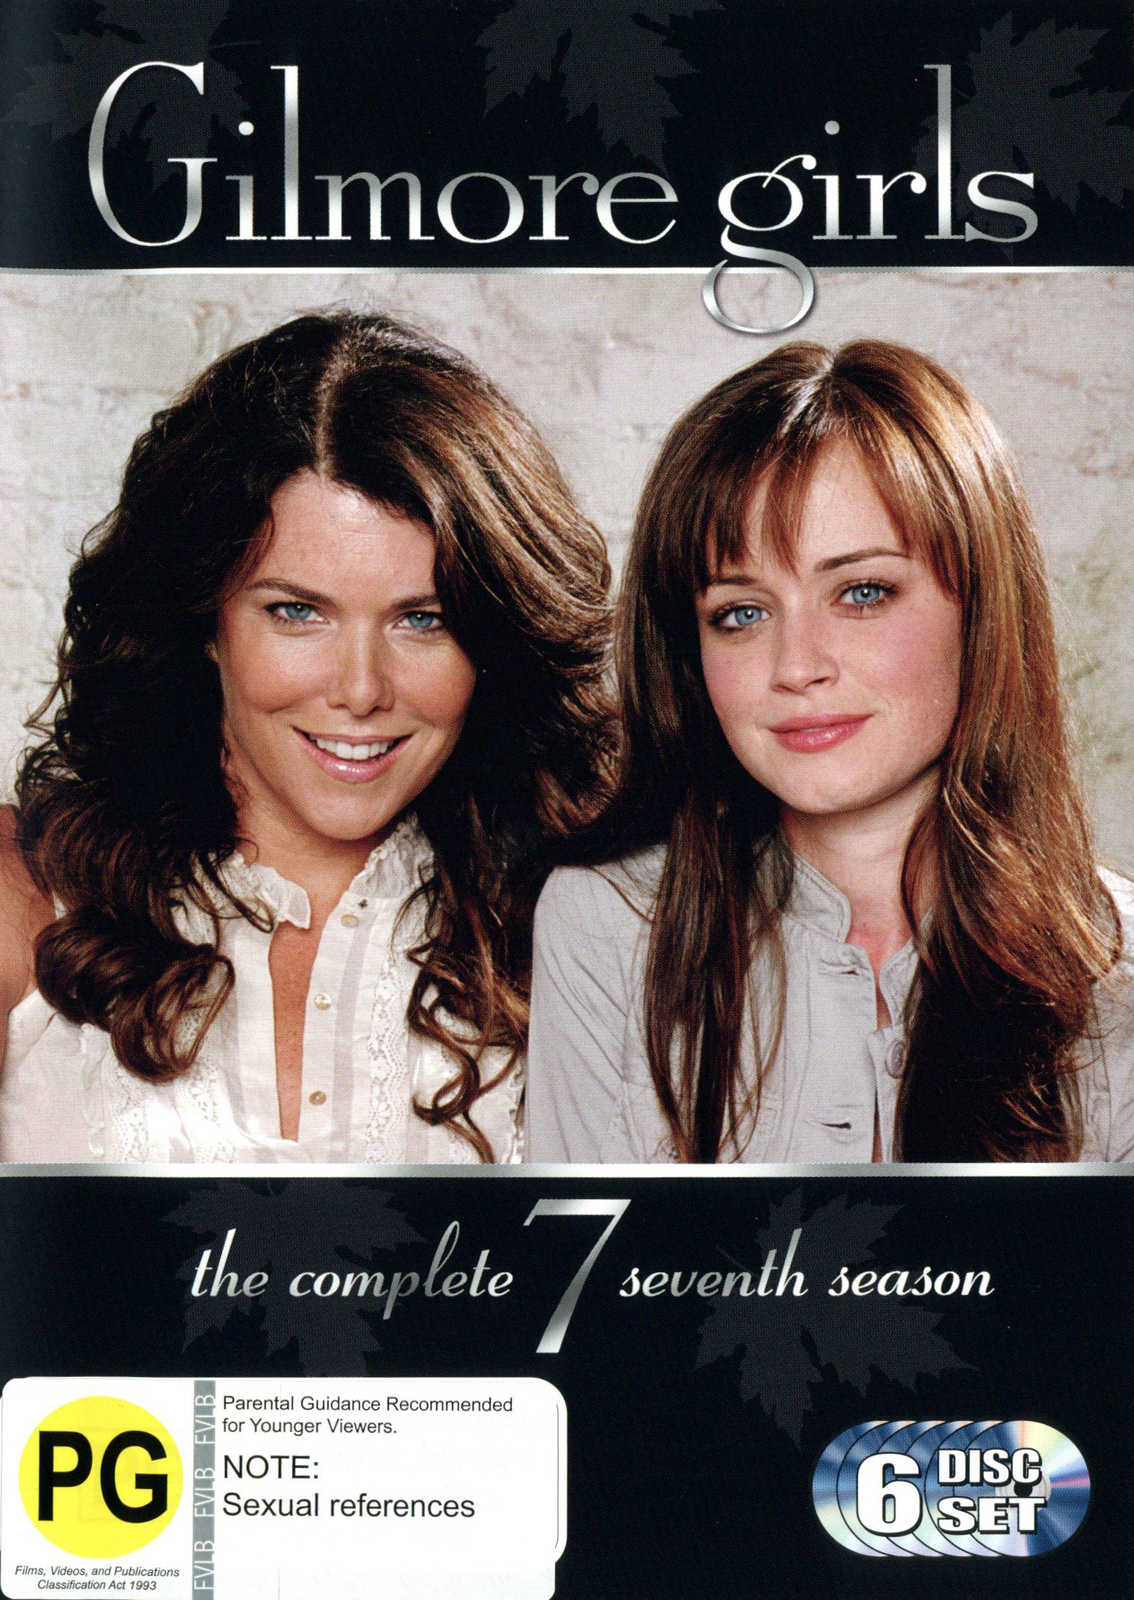 gilmore girls the complete seventh season 6 disc set new packaging dvd in stock buy. Black Bedroom Furniture Sets. Home Design Ideas